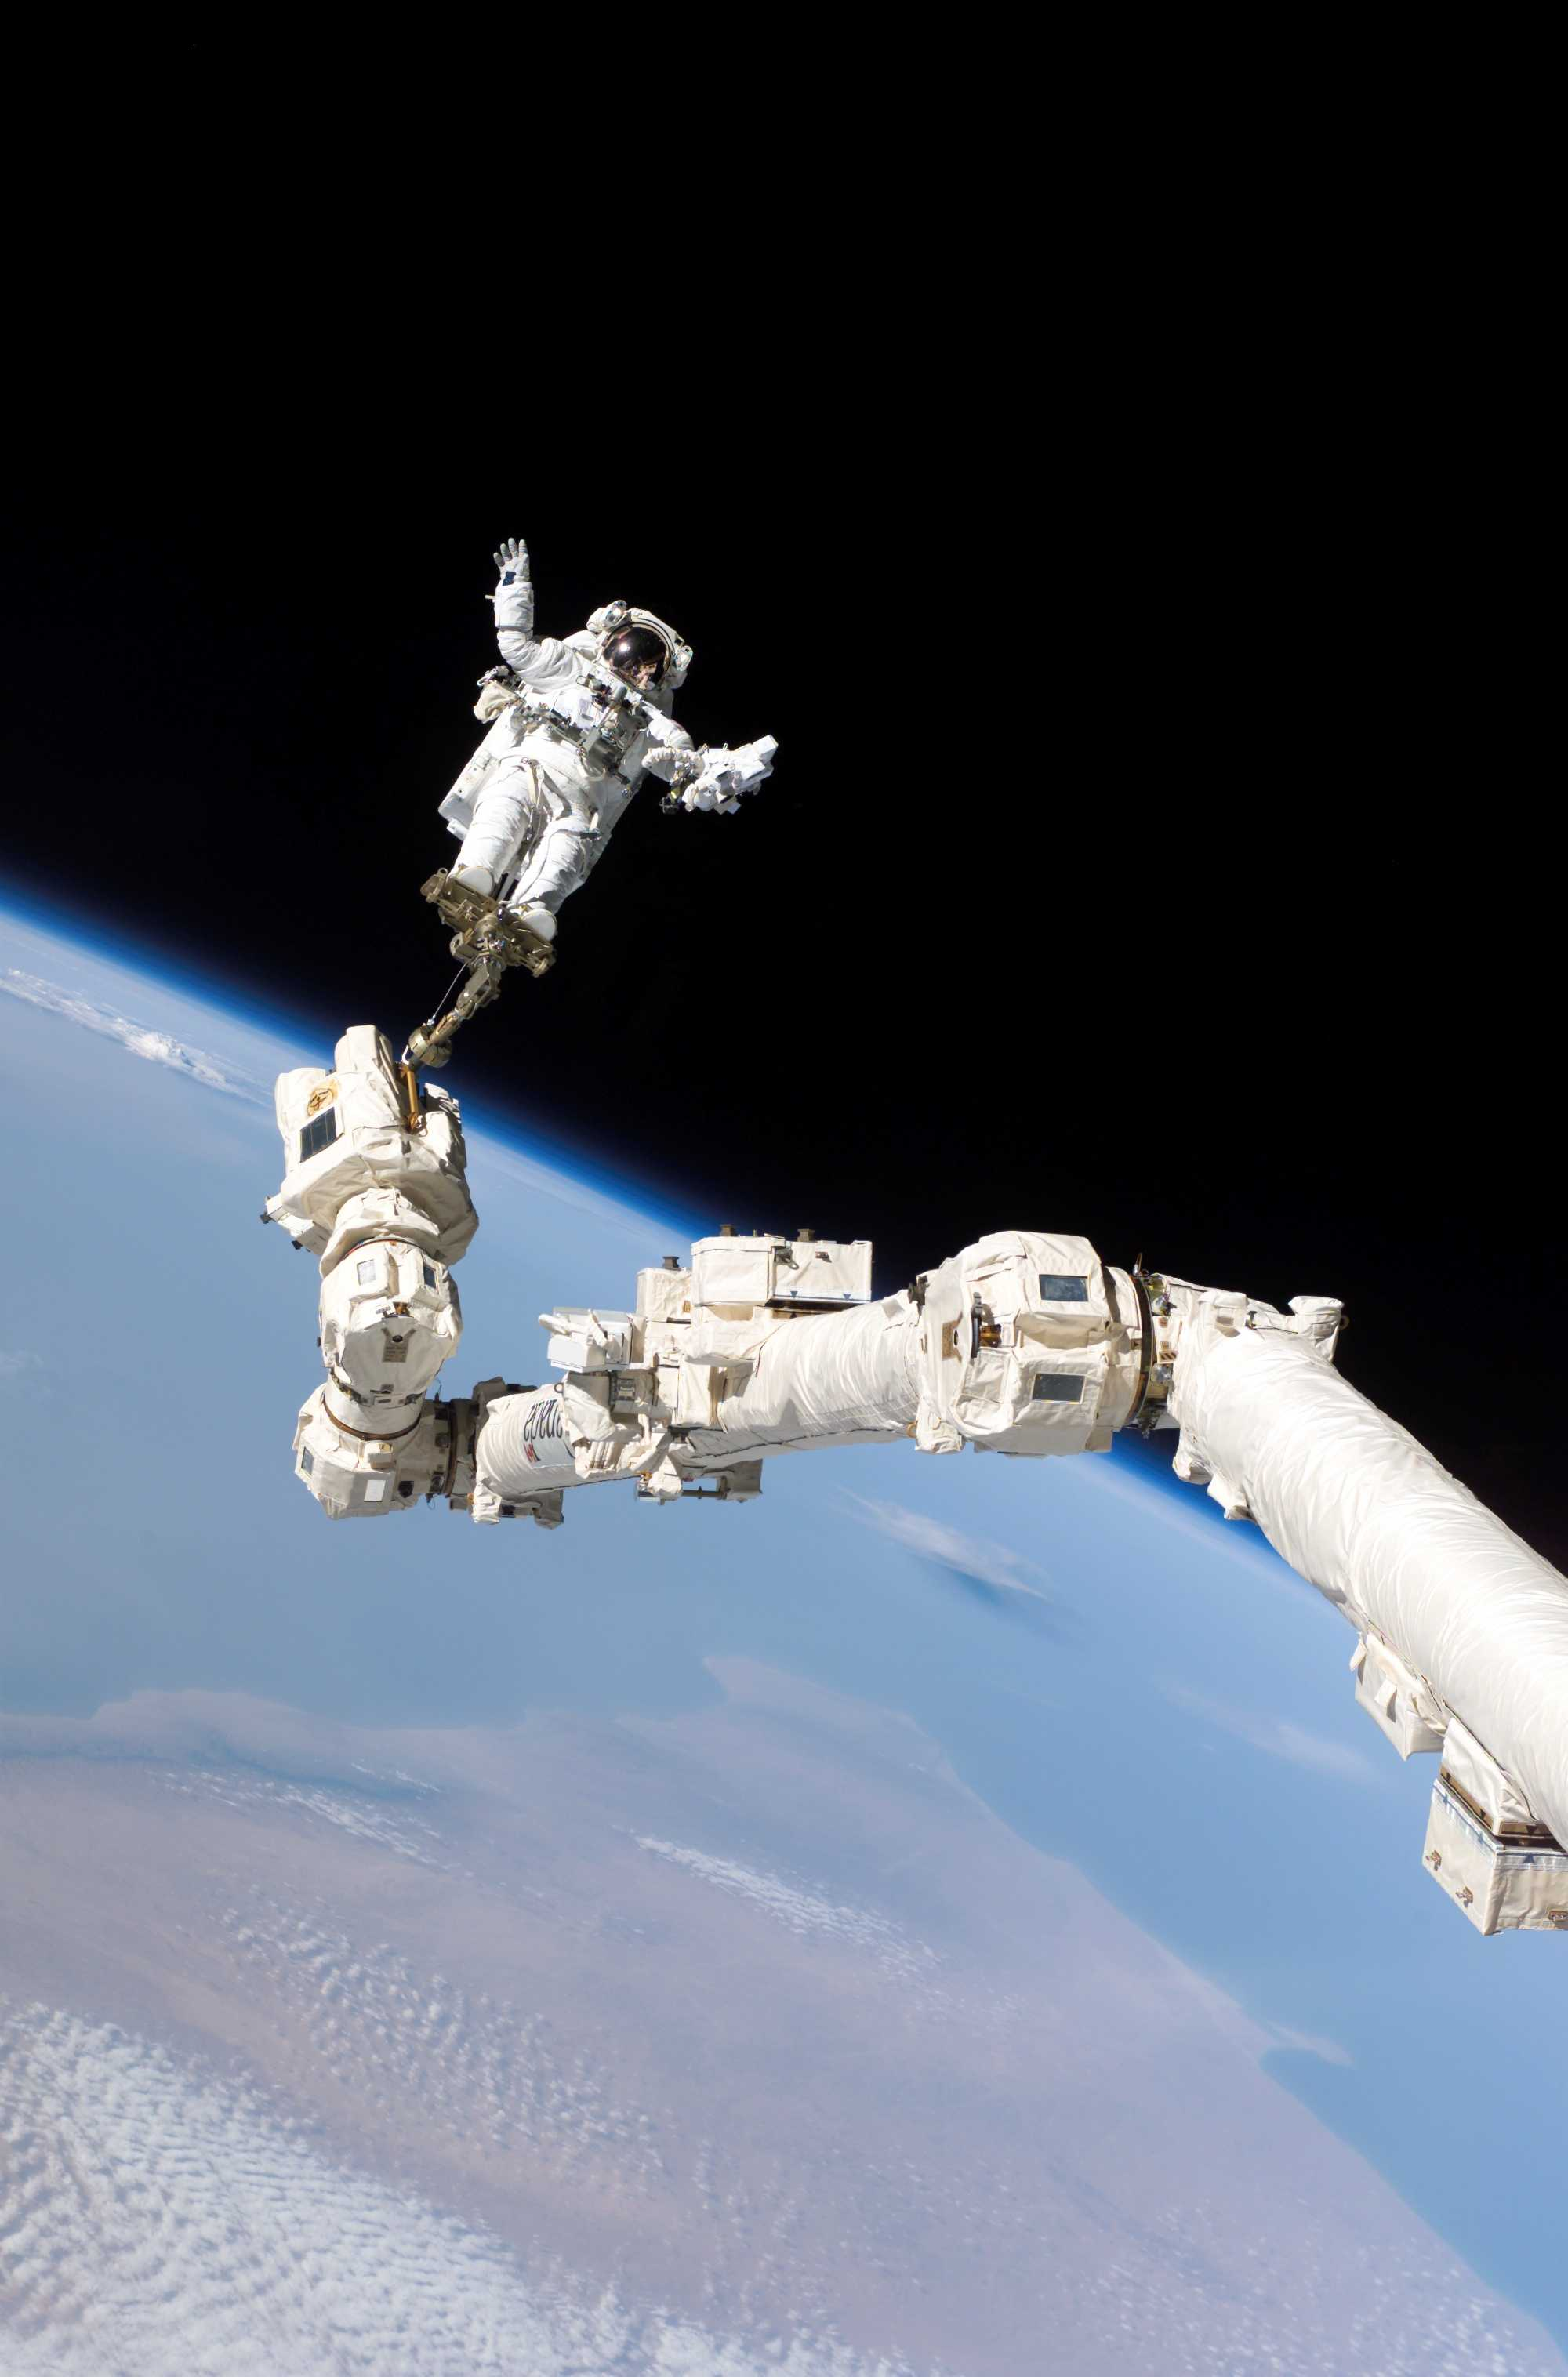 robot from nasa - photo #16